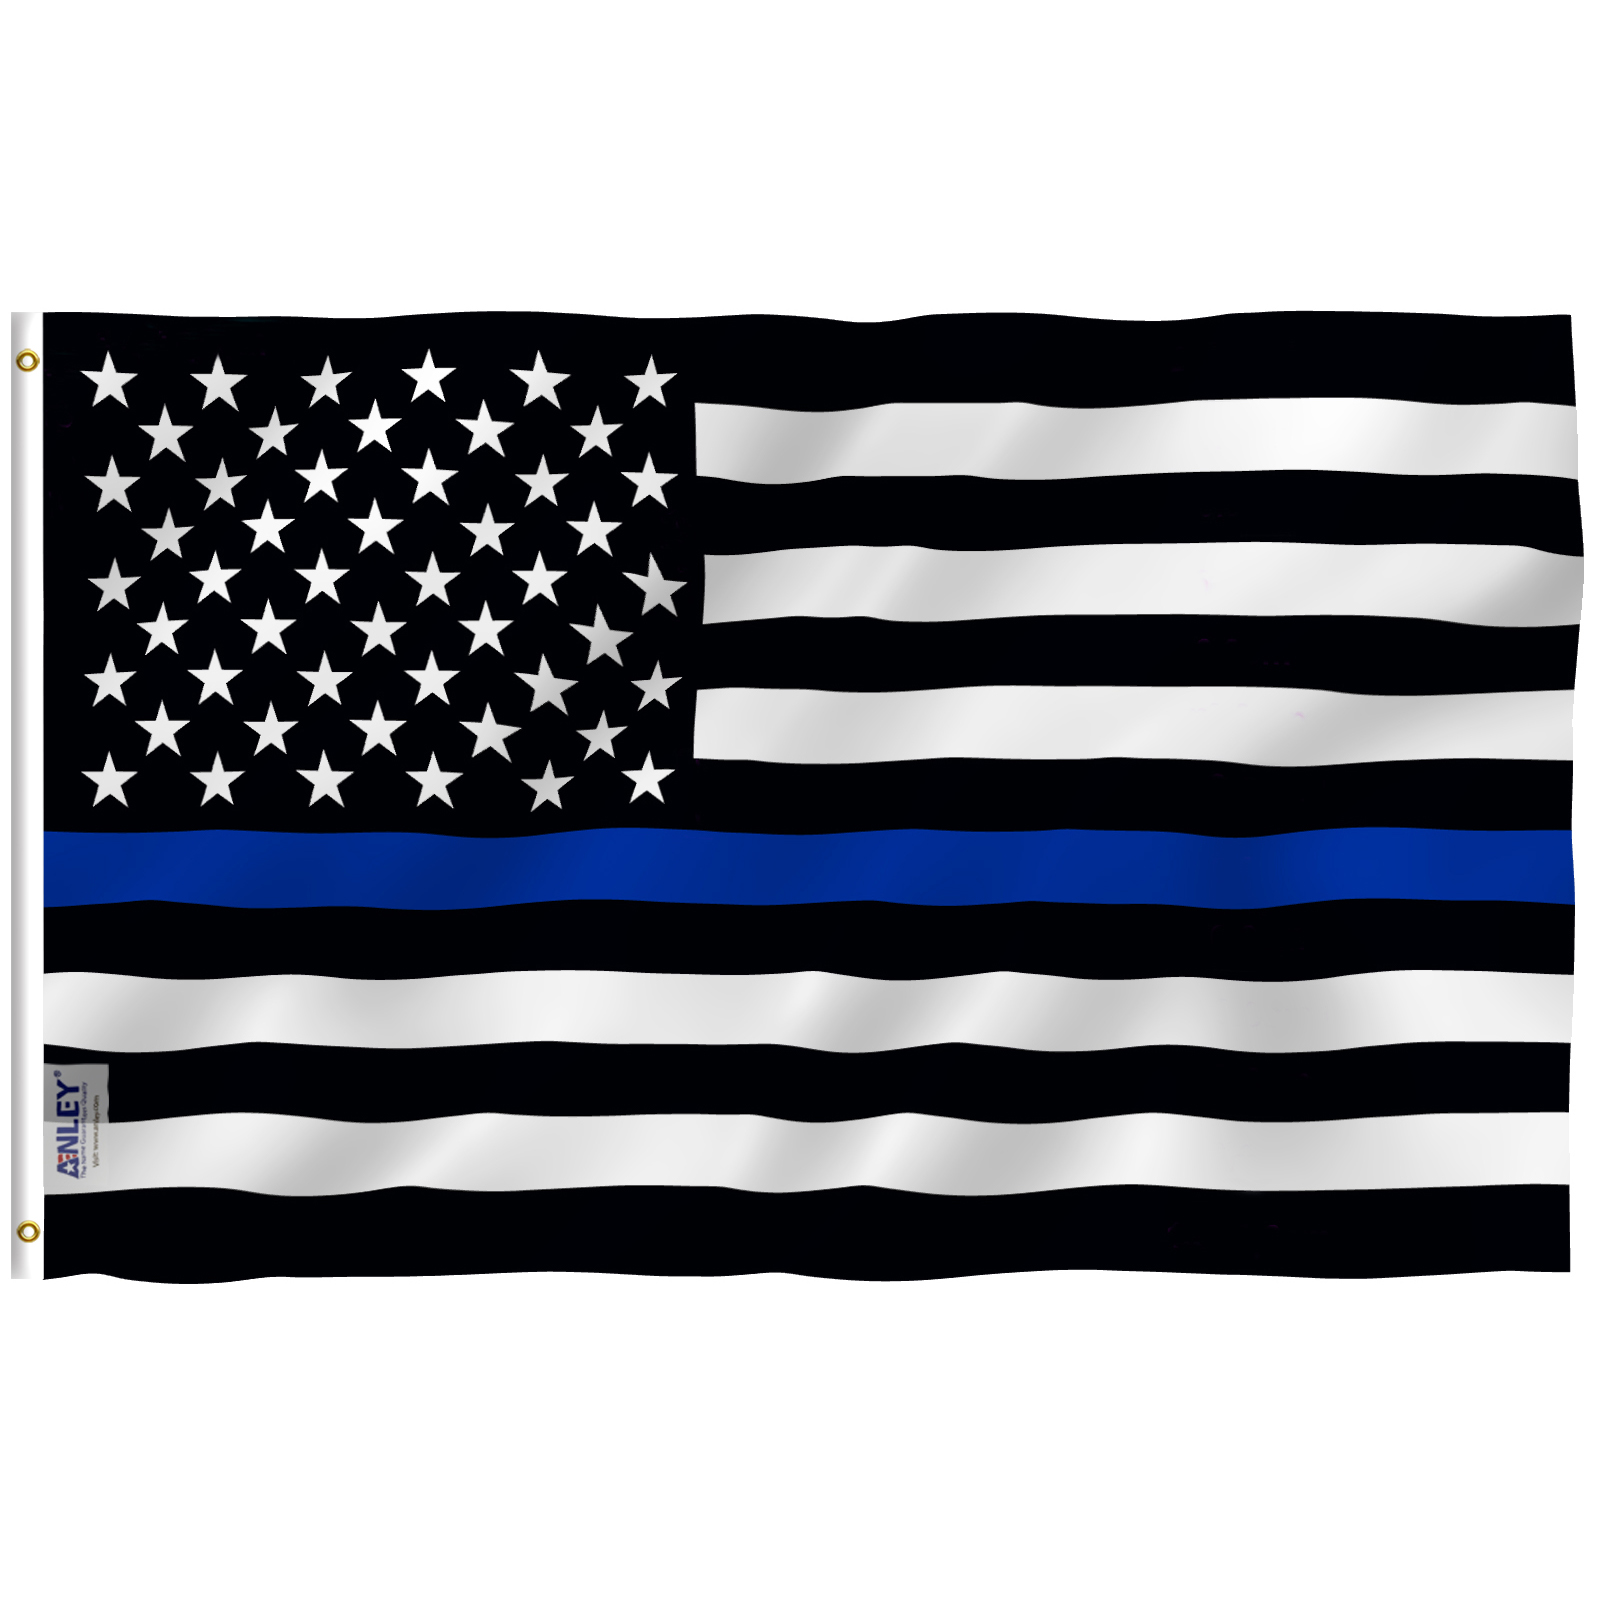 Vivid Color and UV Fade Resistant Anley Fly Breeze 4x6 Foot Thin Blue Line USA Flag Honoring Law Enforcement Officers Flags Polyester with Brass Grommets Canvas Header and Double Stitched